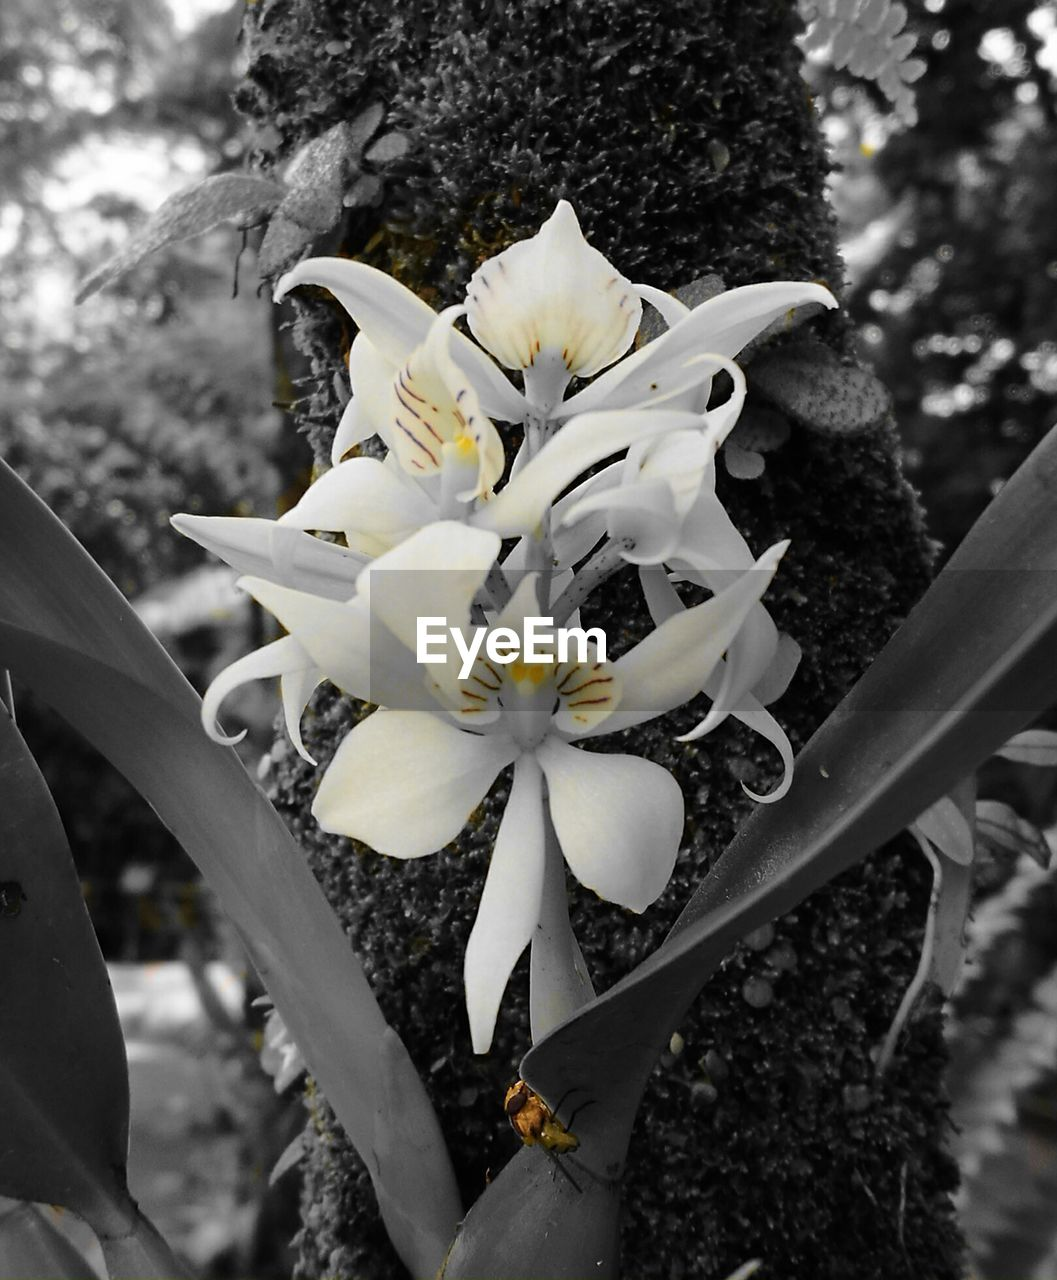 flower, tree, growth, fragility, nature, blossom, petal, beauty in nature, white color, botany, day, flower head, freshness, outdoors, close-up, branch, plant, springtime, no people, focus on foreground, blooming